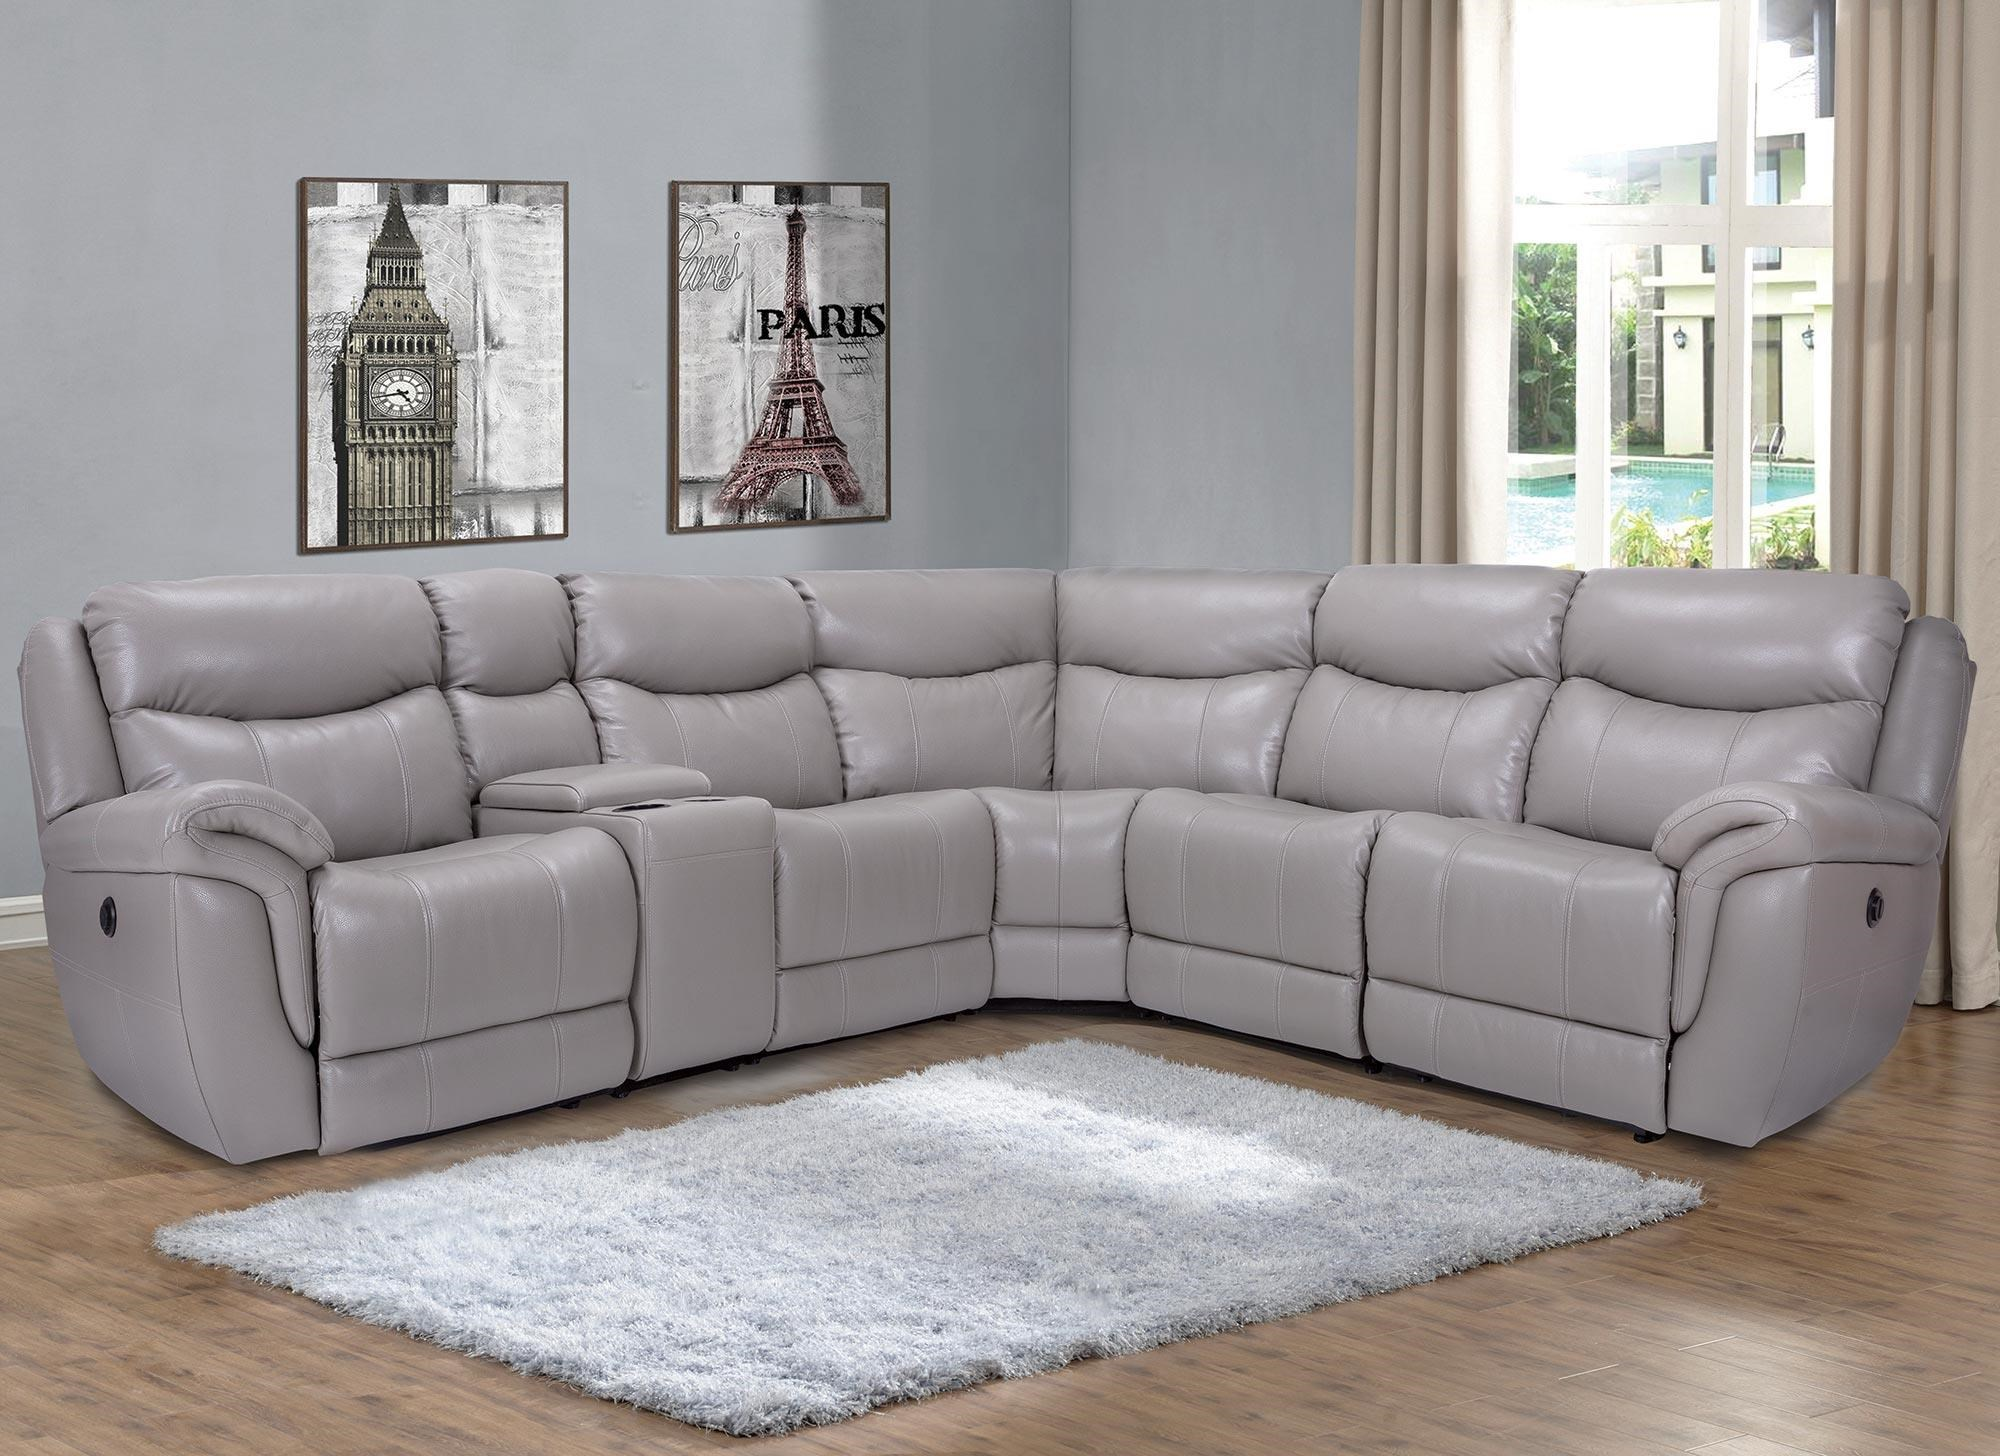 Leather Sectional Sofa Recliner Trieste 6pc Power Reclining Leather Sectional By Marzilli International At Rotmans